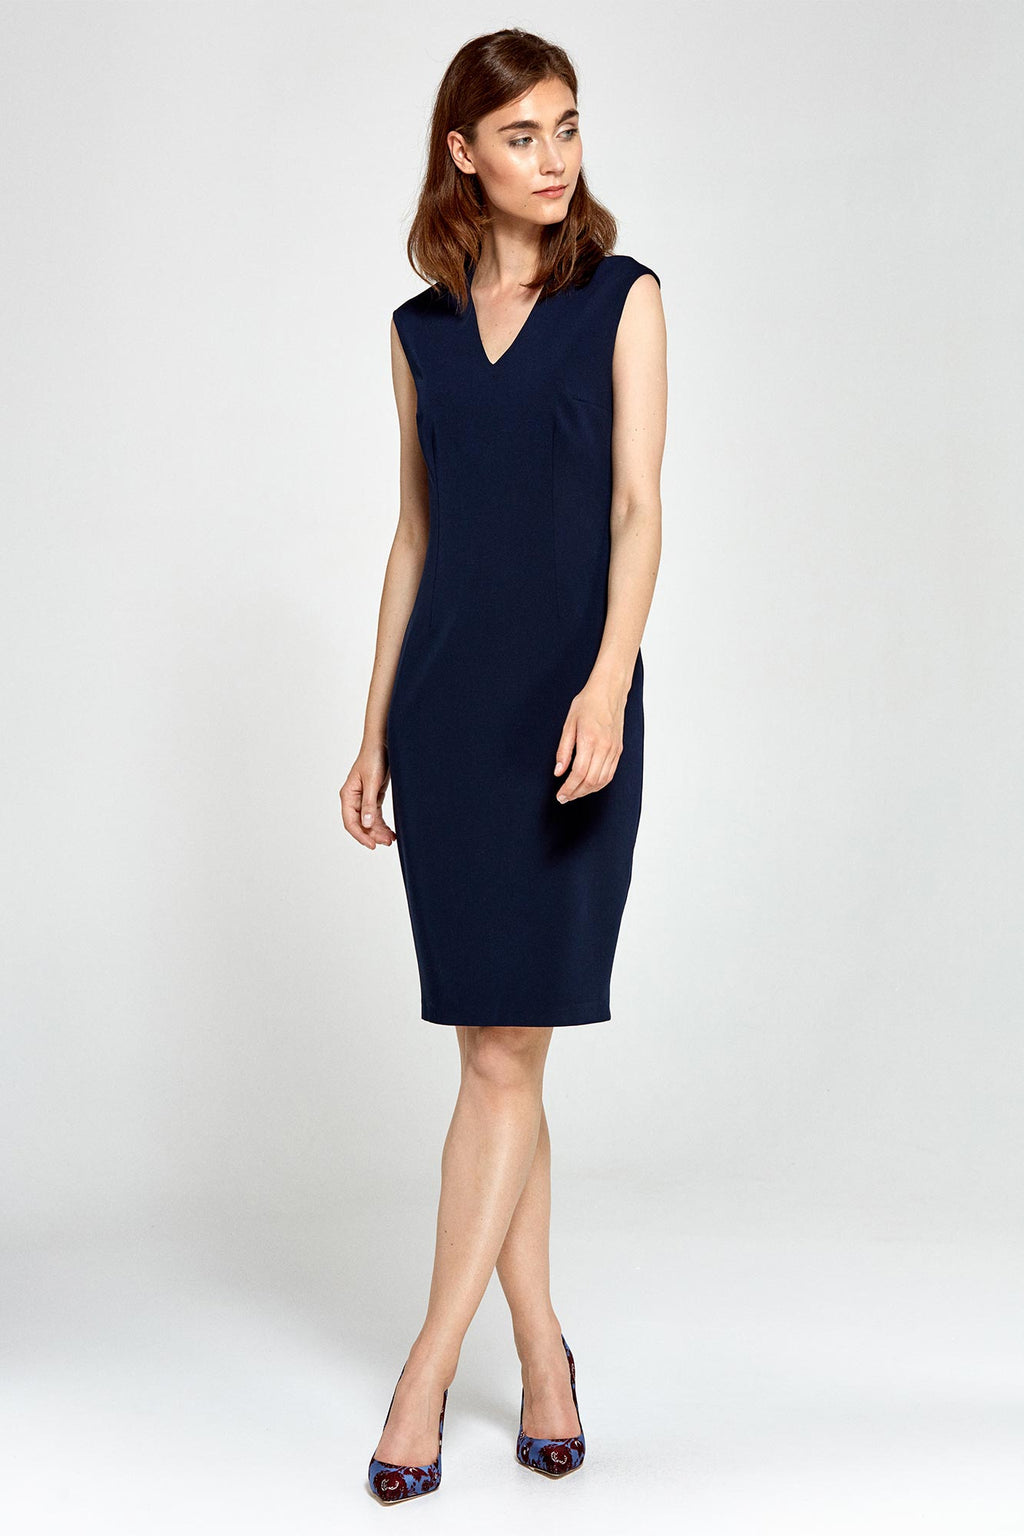 Navy Blue Fitted V Neckline Dress